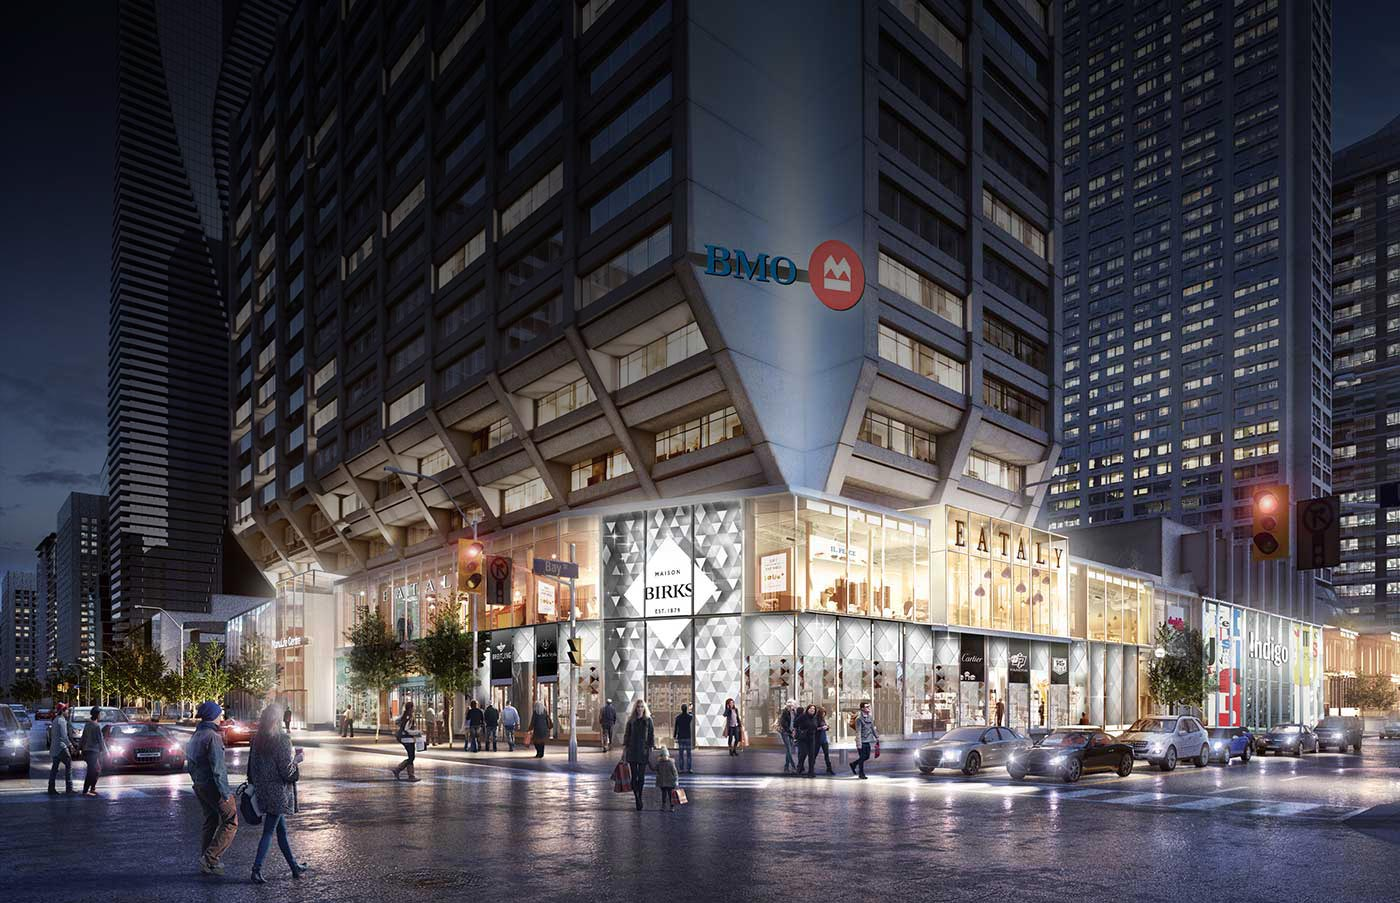 By the end of the year, Manulife Centre will be home to Eataly, Shoppers Drug Mart, and other new tenants. Birks re-opened last month. Rendering: Manulife.